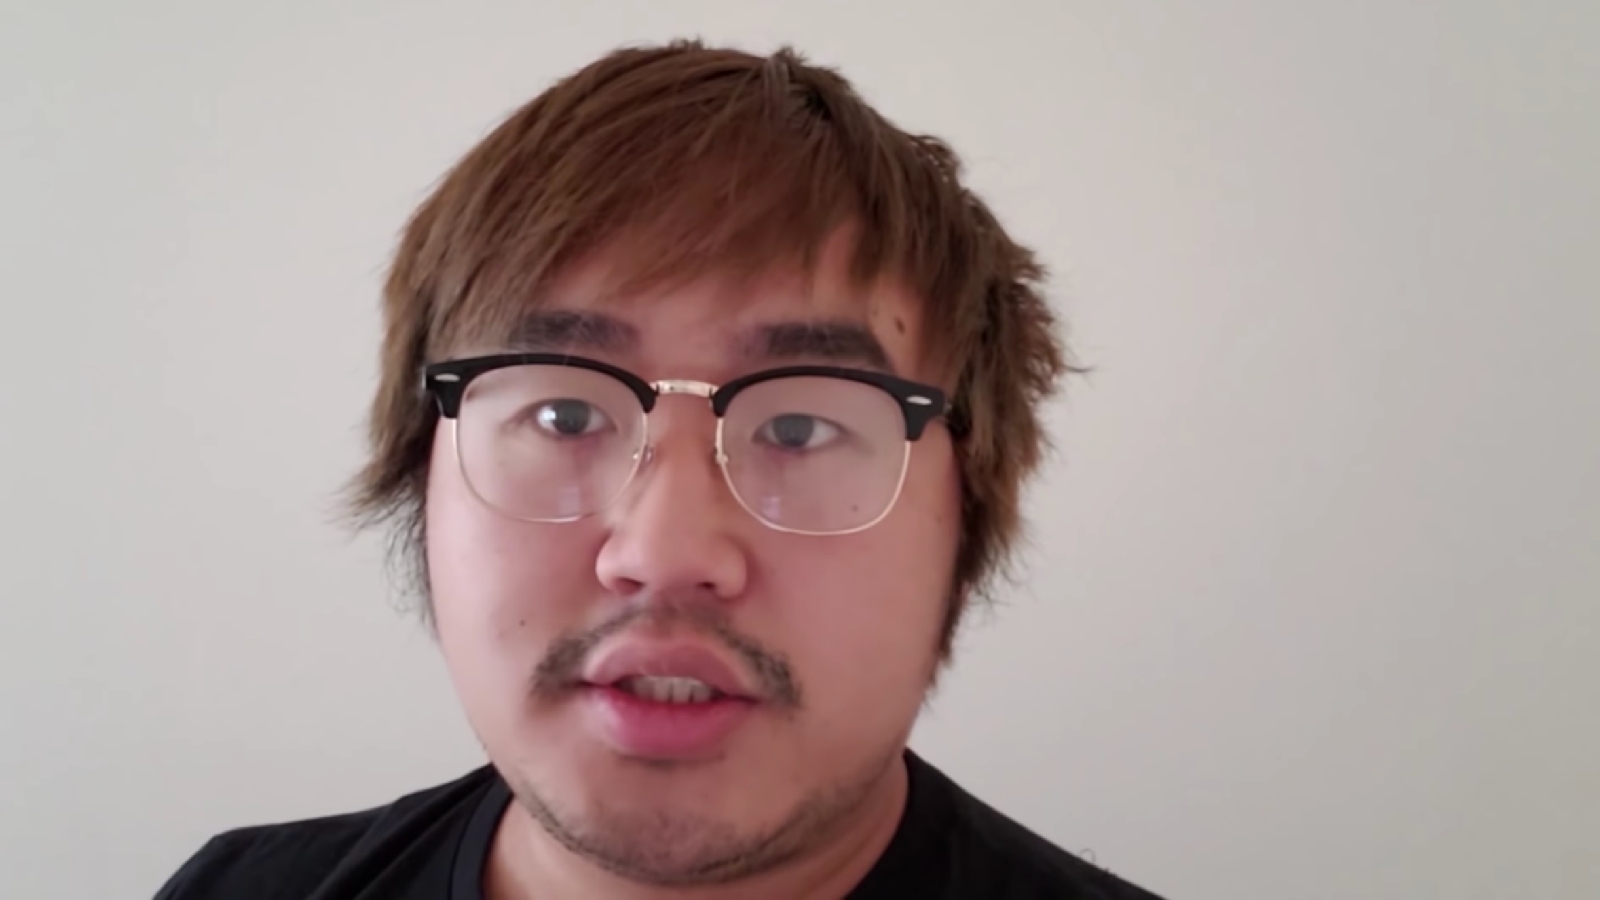 Asian Andy Films on YouTube